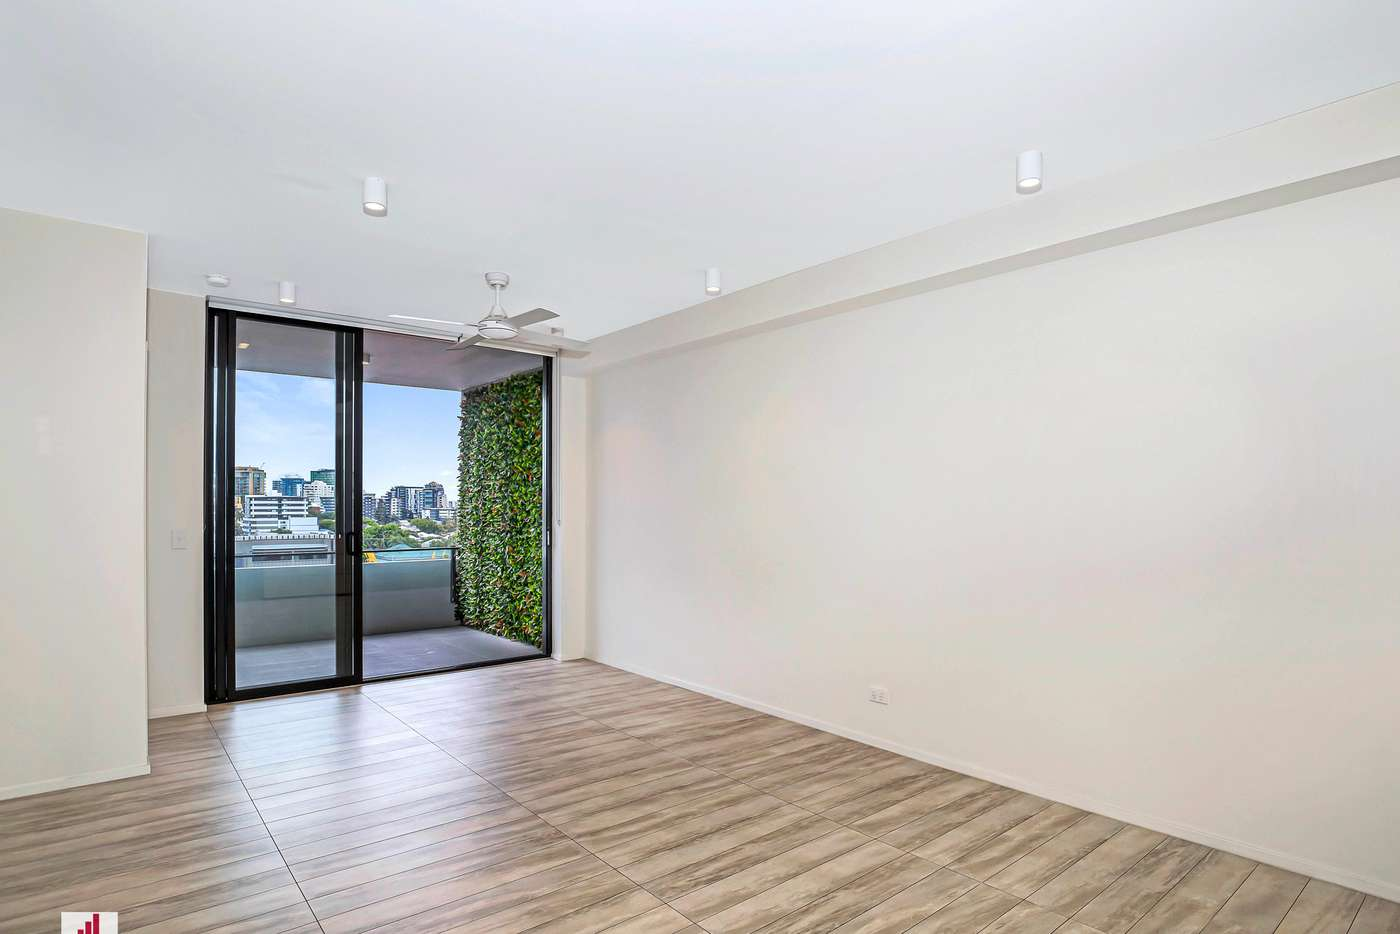 Fifth view of Homely apartment listing, 607/36 Anglesey Street, Kangaroo Point QLD 4169